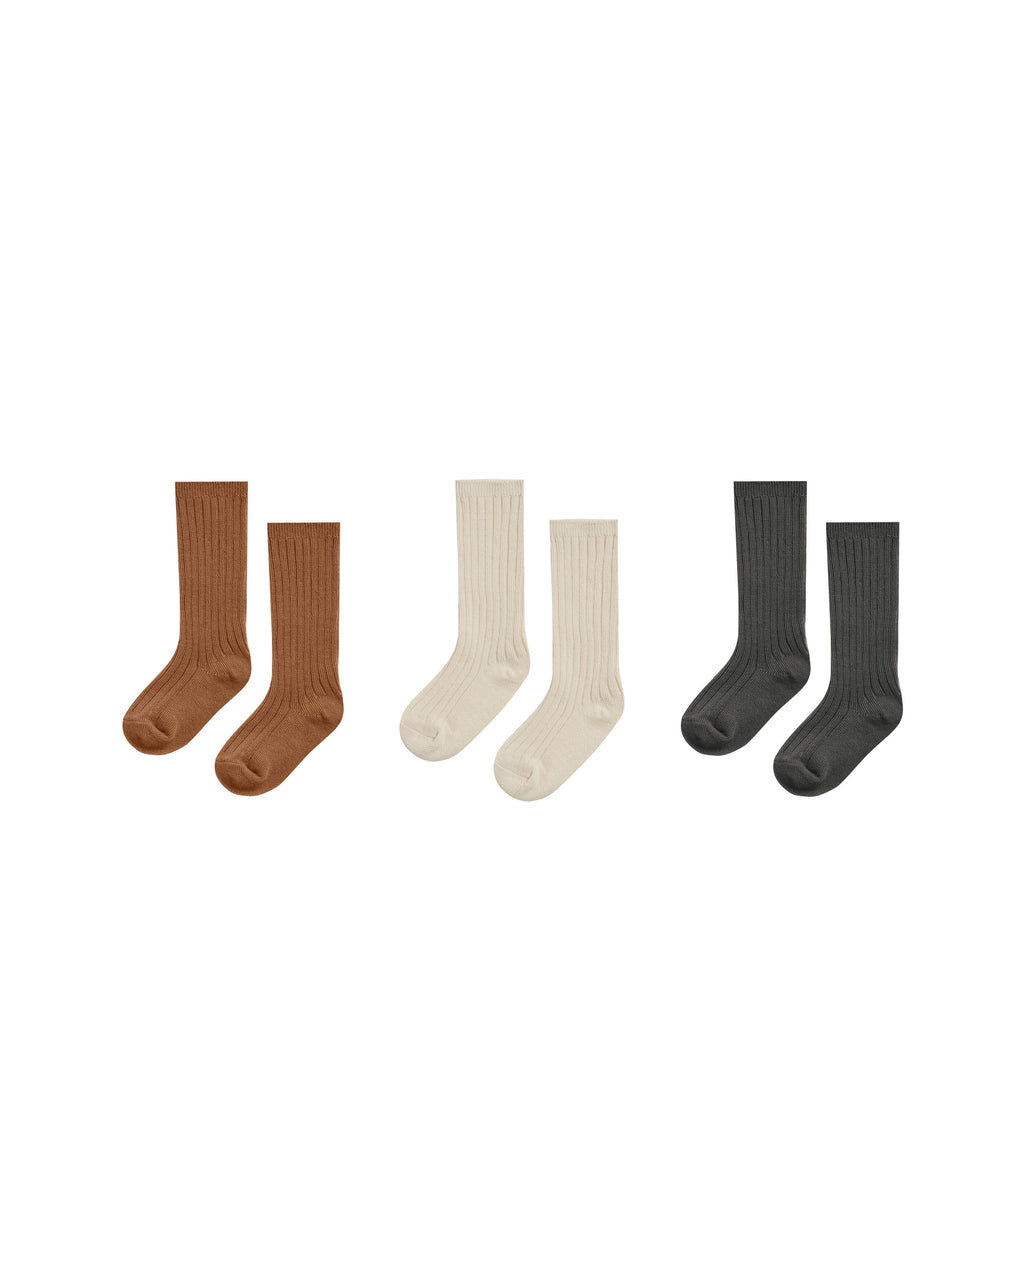 Rylee and Cru AW20- Knee Sock Set of Three- Cinnamon, Natural and Black